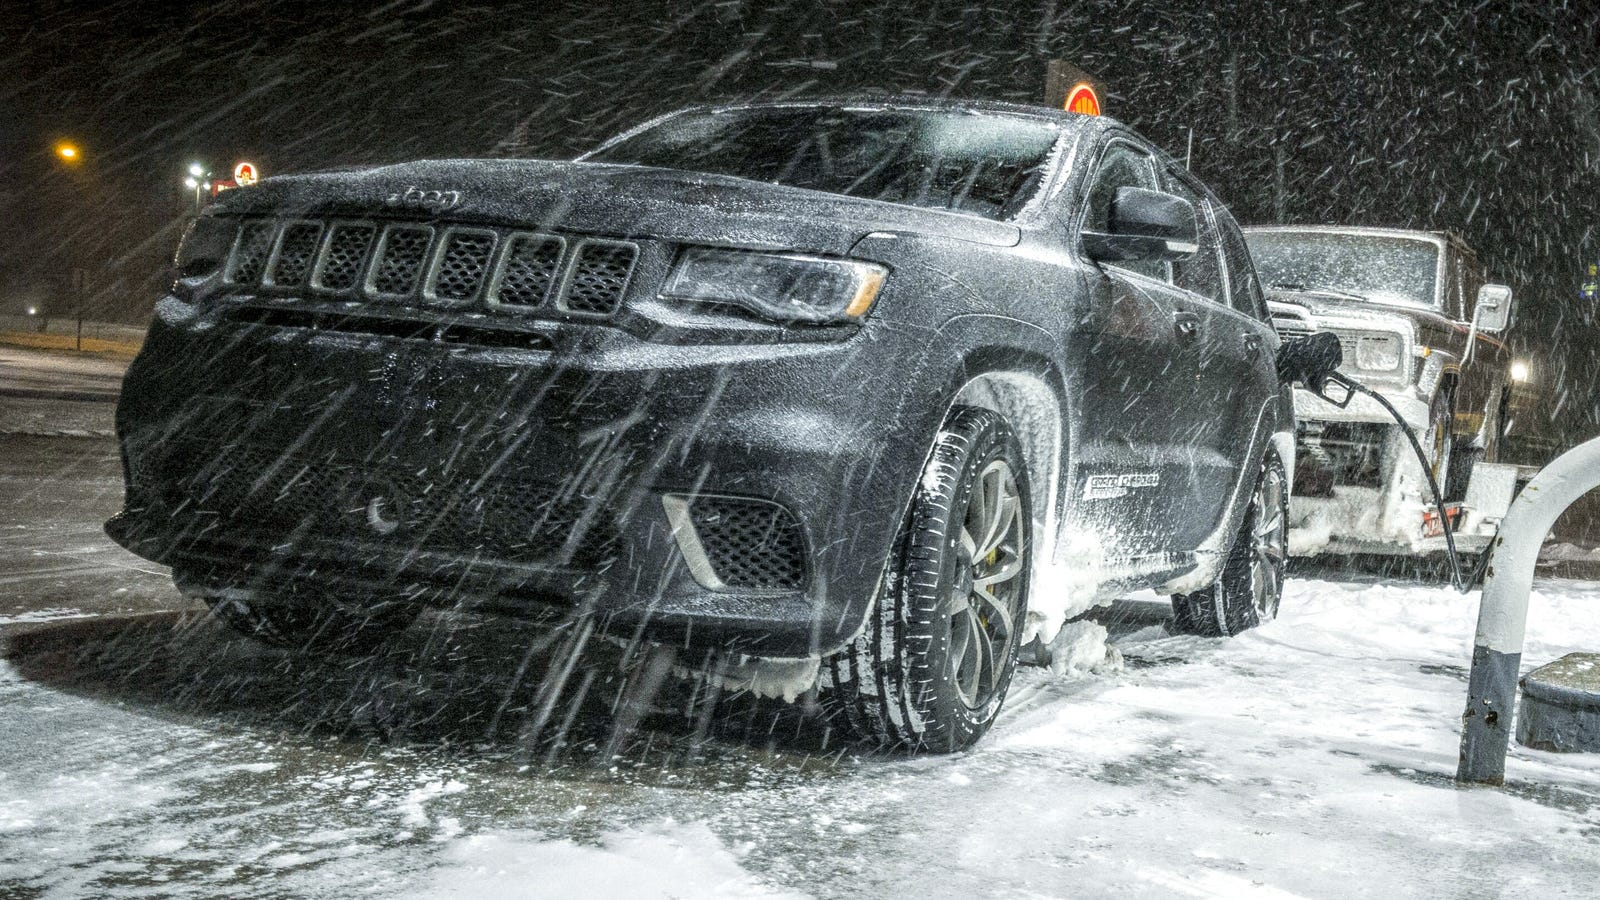 Jeep In Snow >> Towing An Old Jeep Through An Ice Storm With A 707 Hp Jeep